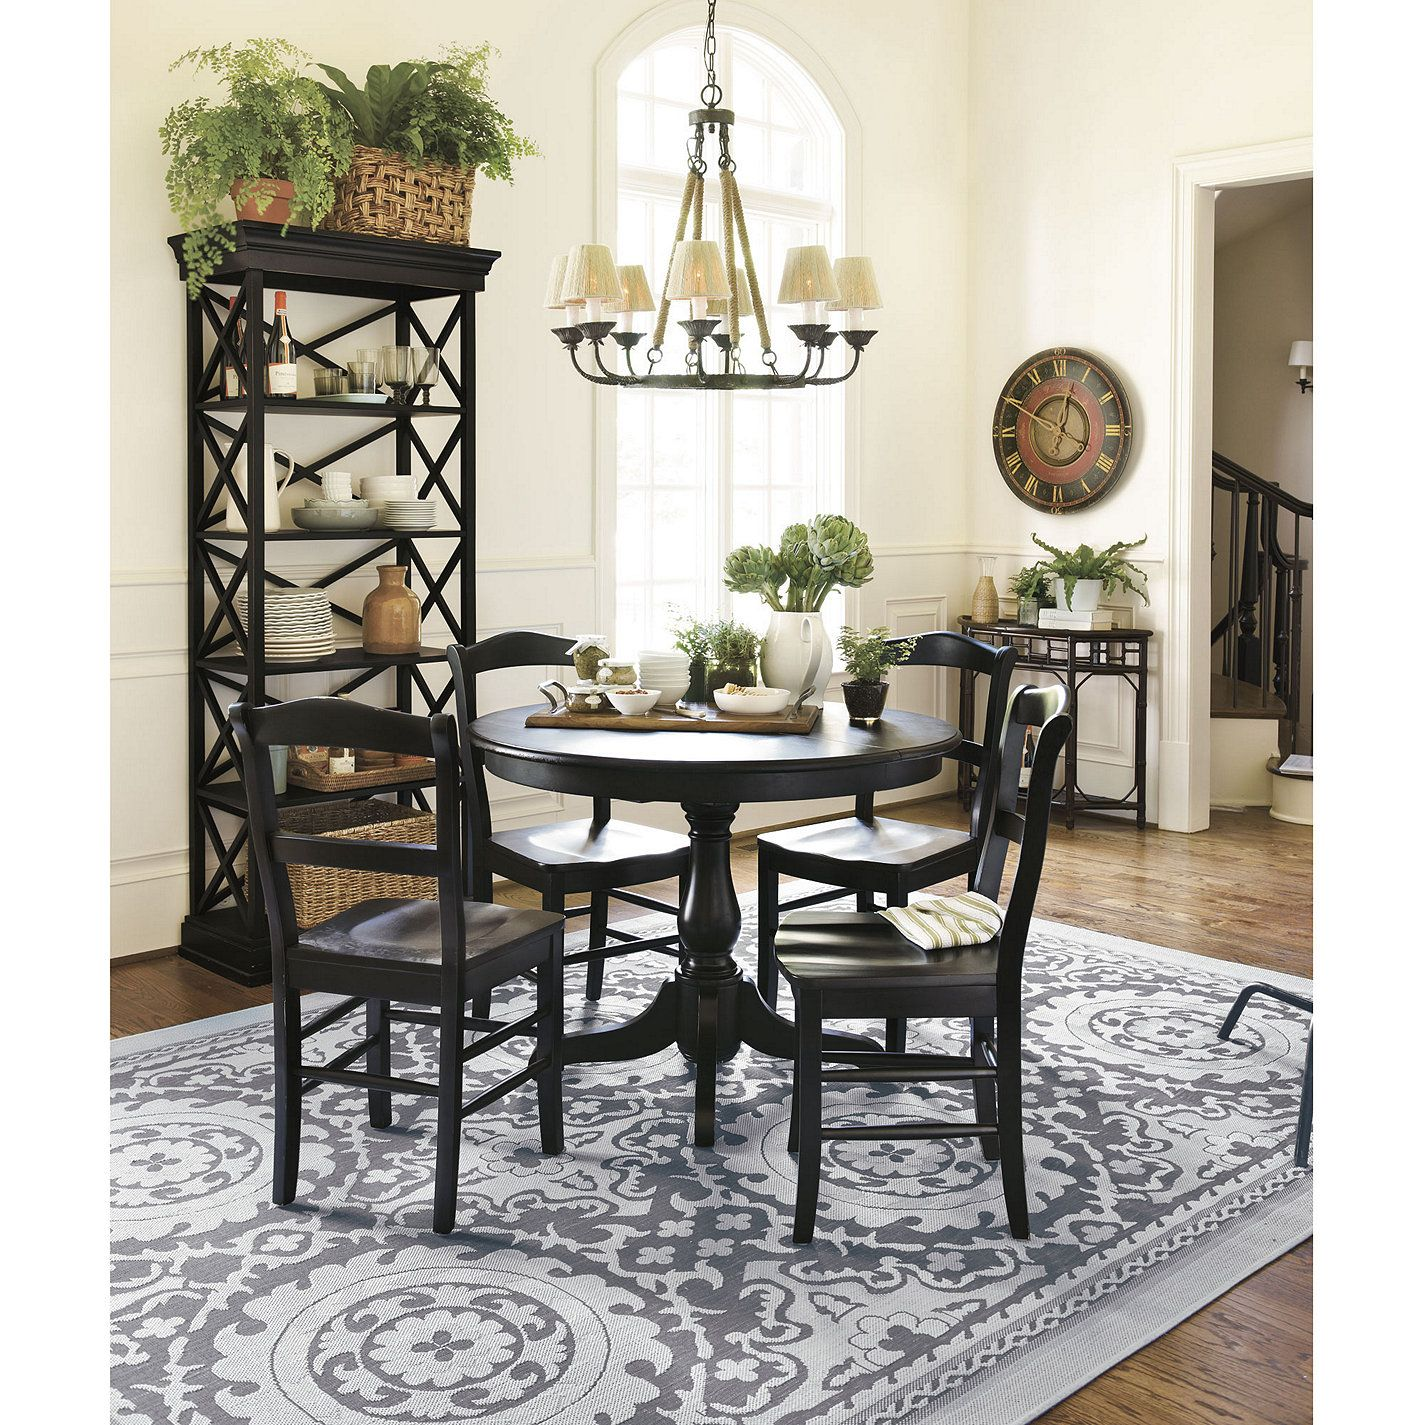 Big rug under the dining table | 5 piece dining set ...